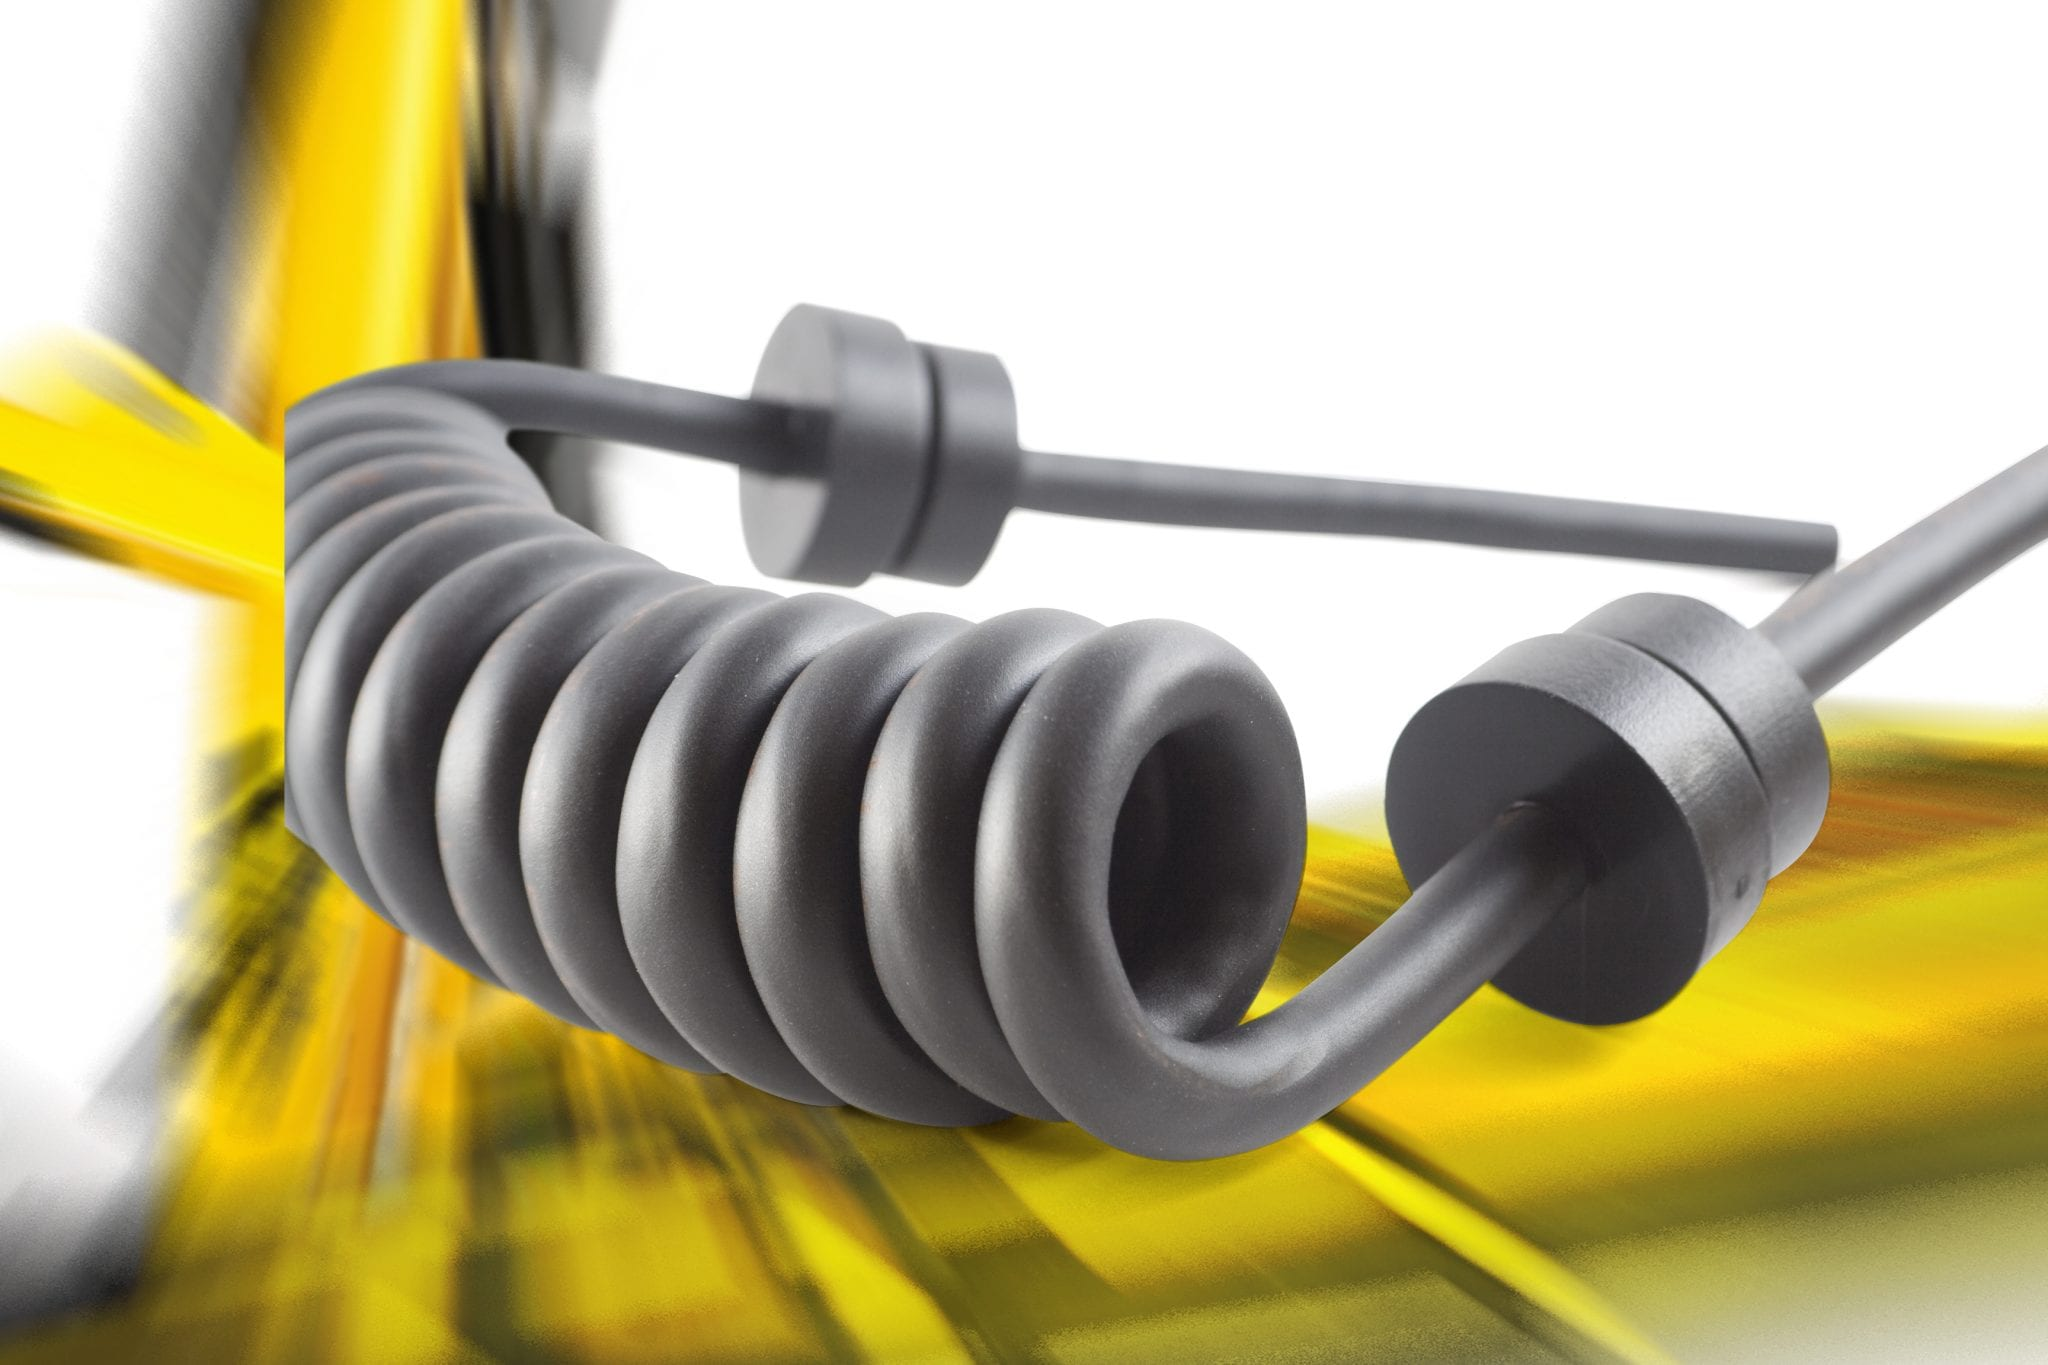 Carrio Cabling Coil Cords